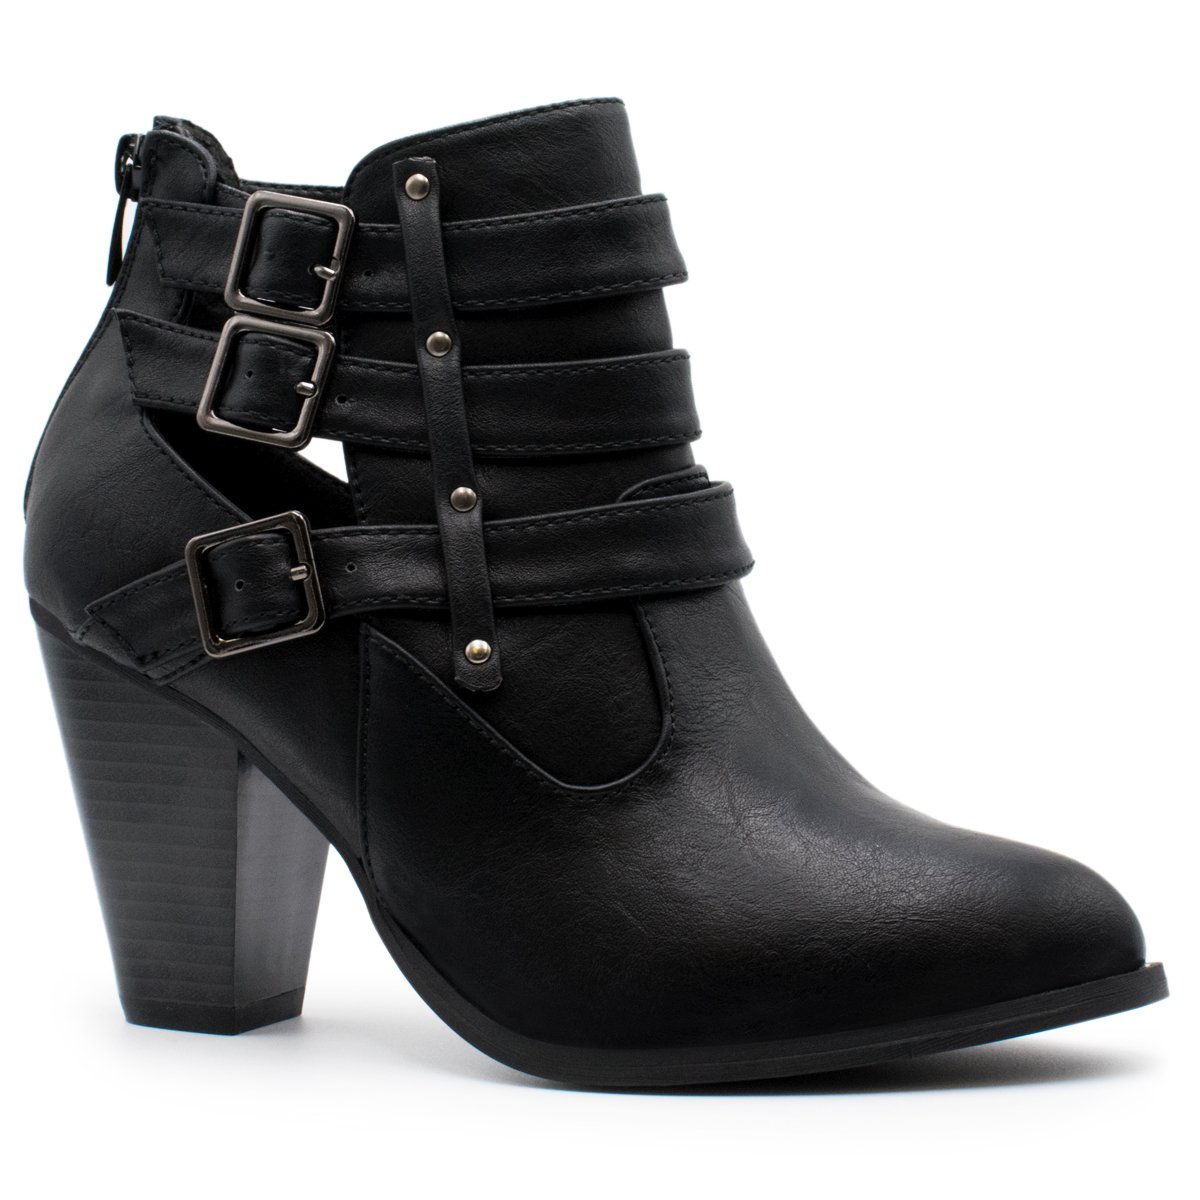 Forever Women's Buckle Strap Block Heel Ankle Booties CAMILA-64